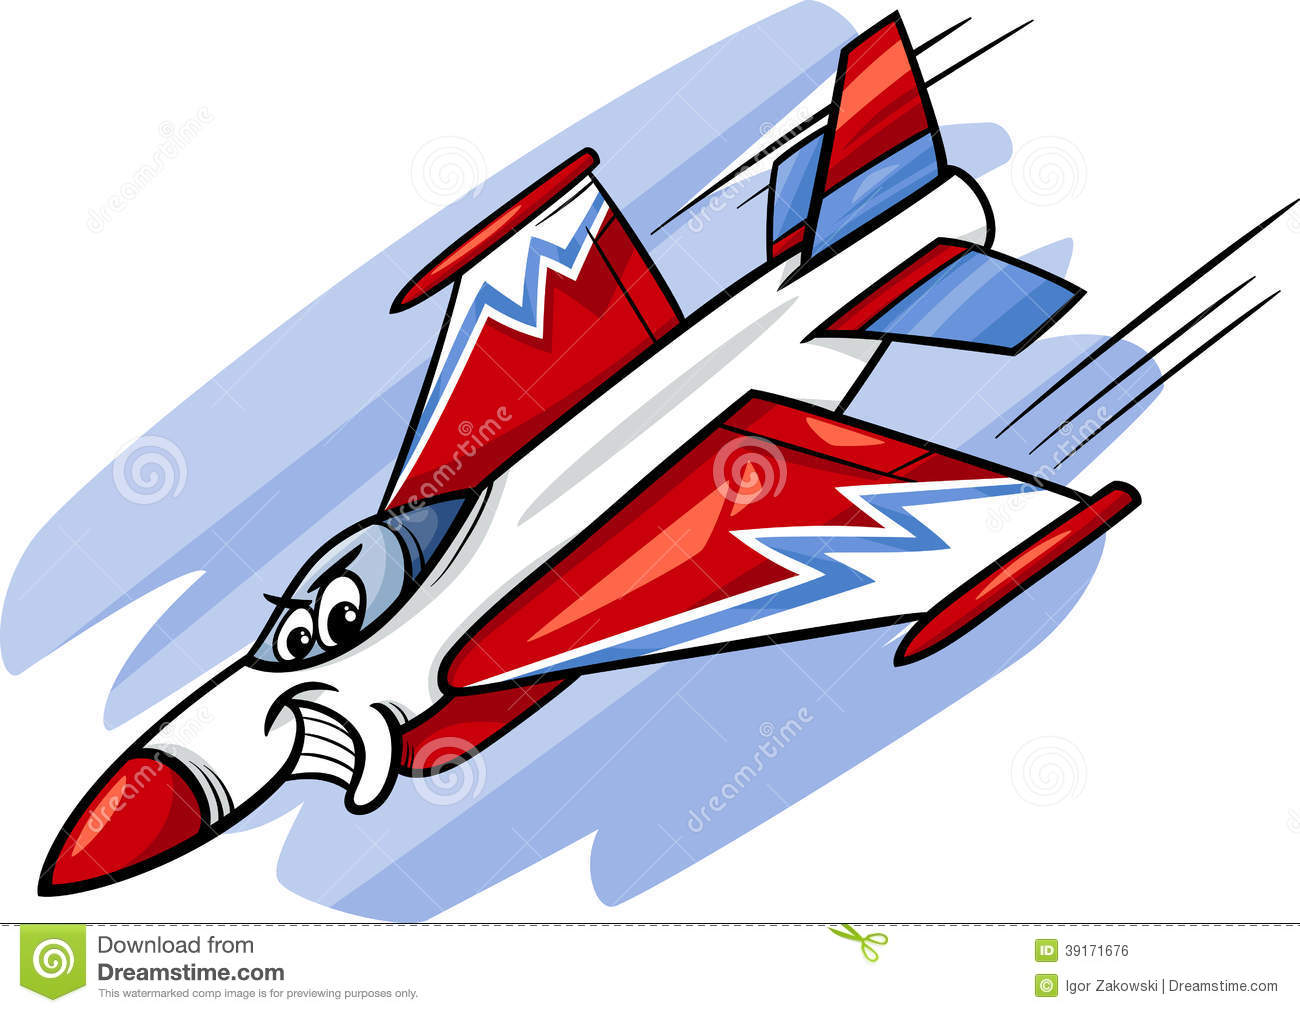 Jet Fighter Plane Cartoon Illustration Stock Vector - Image: 39171676